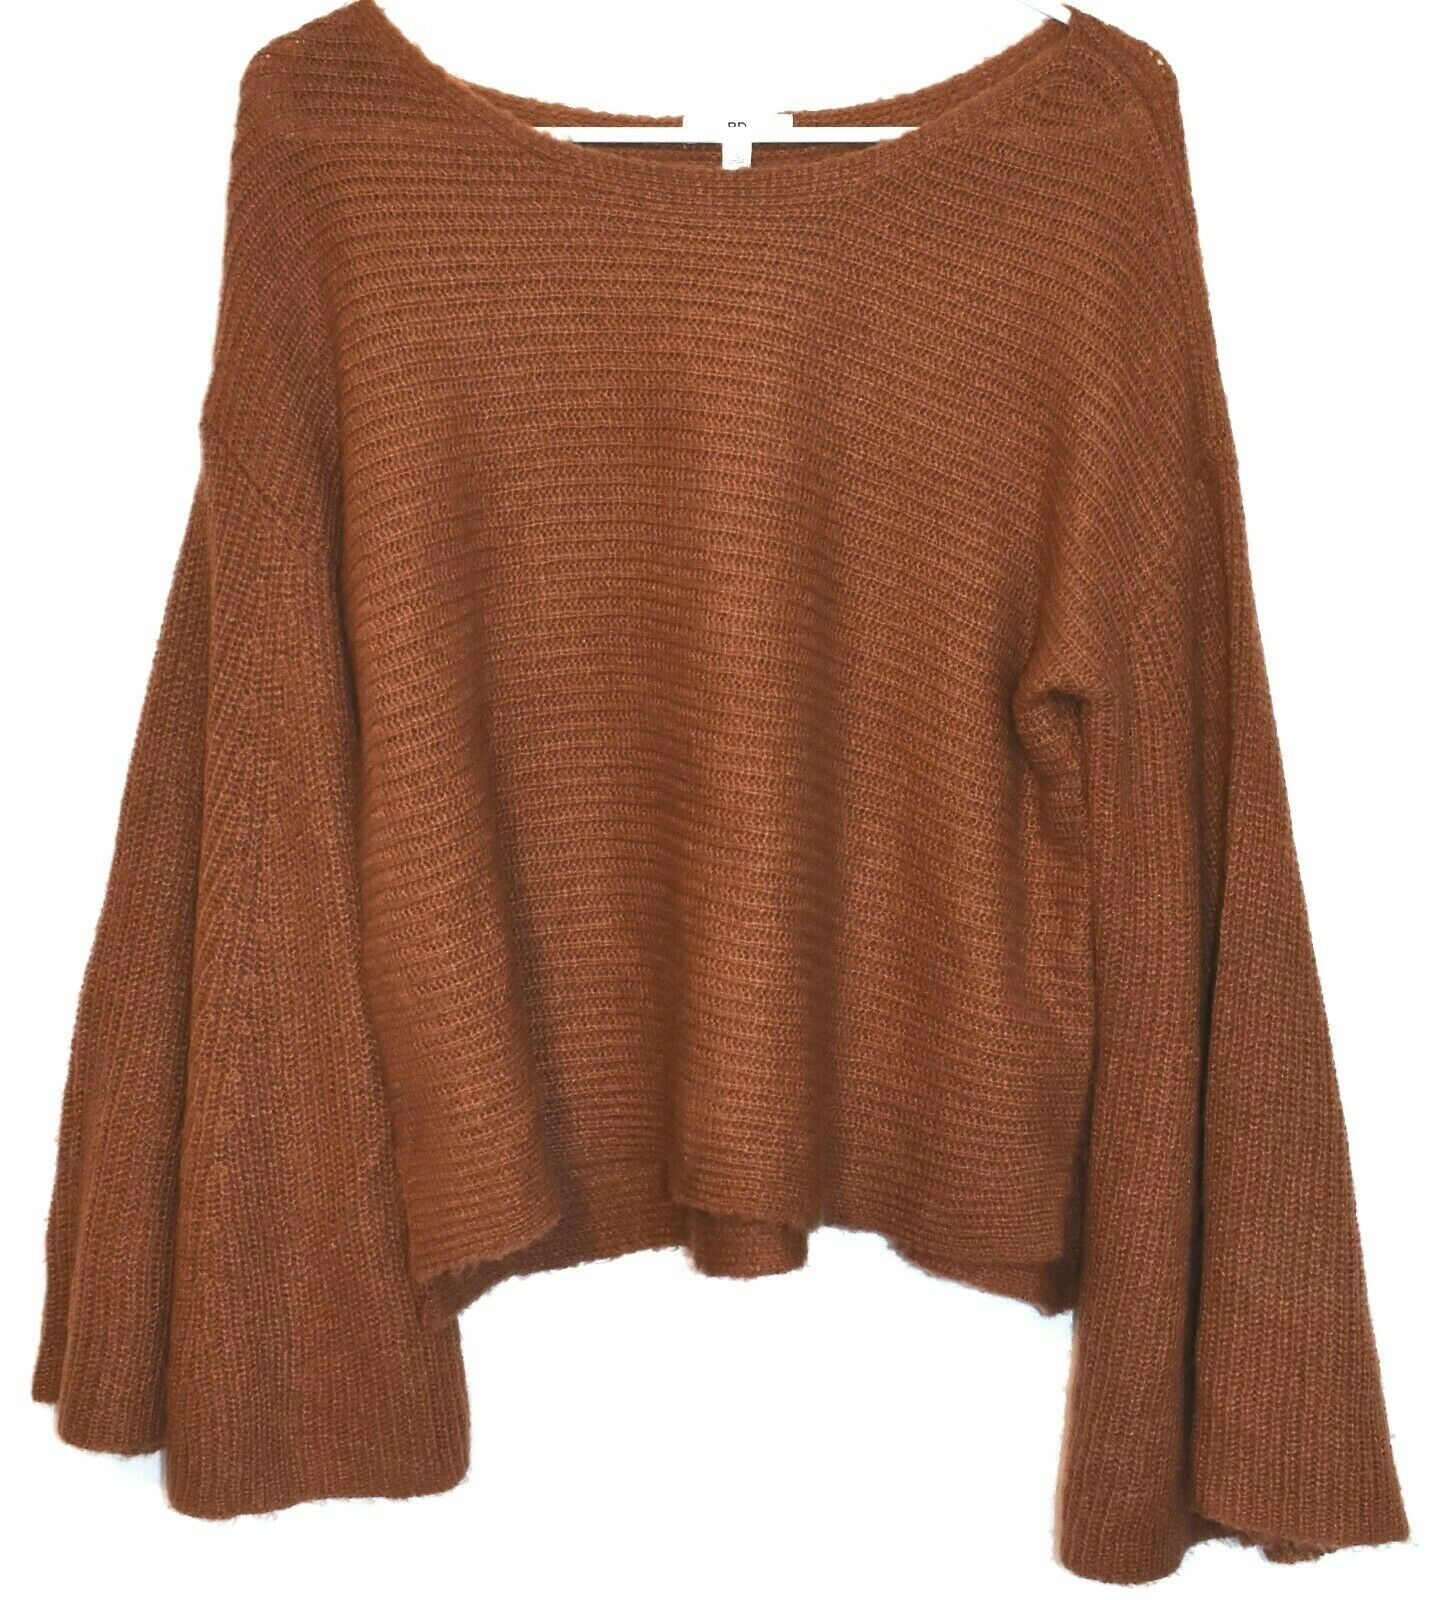 BP. Nordstrom Women's Oversized Flared Long Sleeve Brown Knit Sweater Size XS